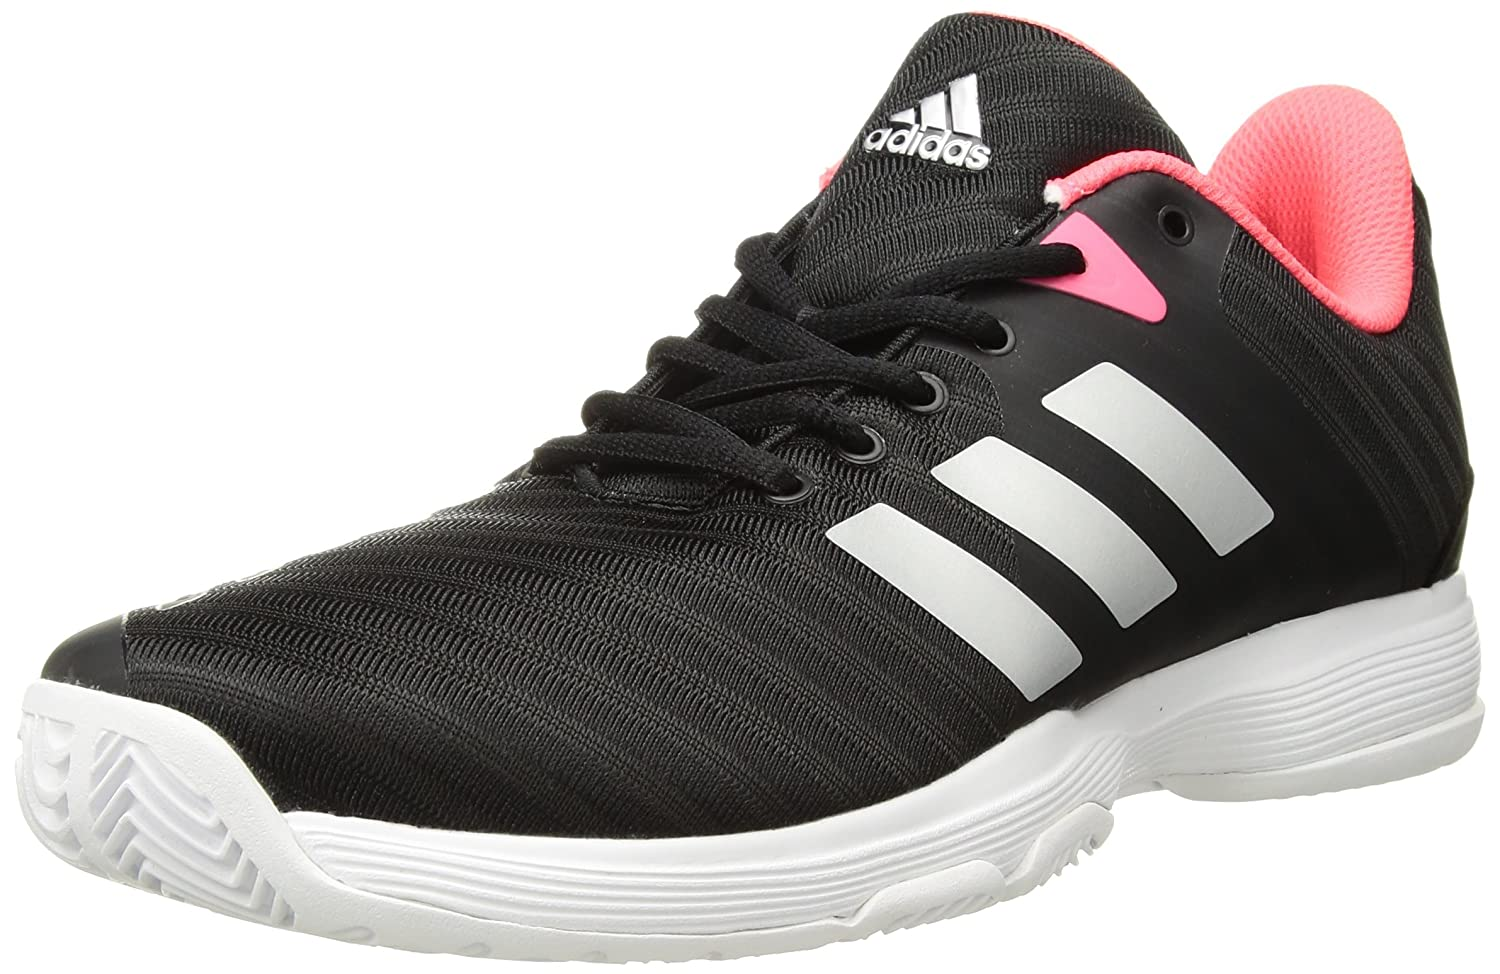 adidas Women's Barricade Court Tennis Shoes B077X4Y7J5 10 B(M) US|Black/Matte Silver/Flash Red